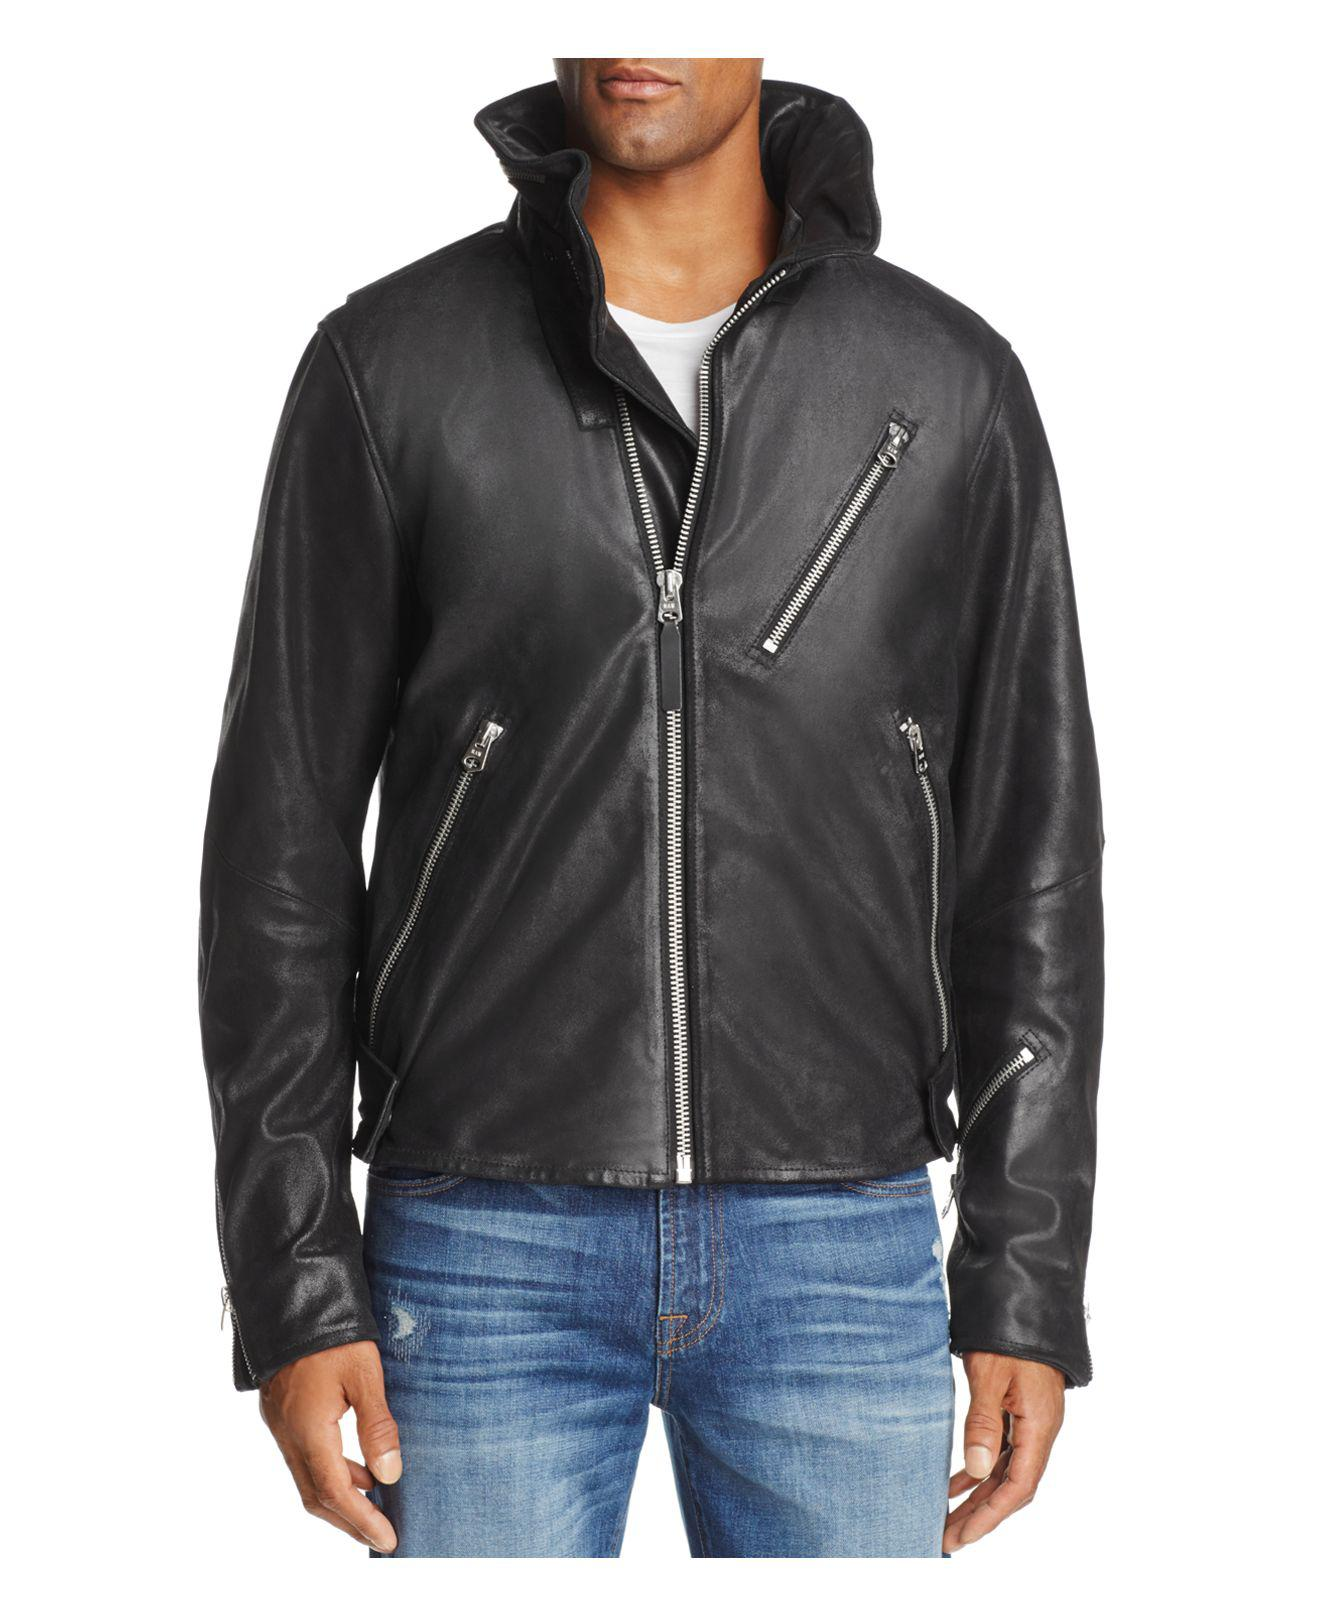 Guess Men S Leather Jacket